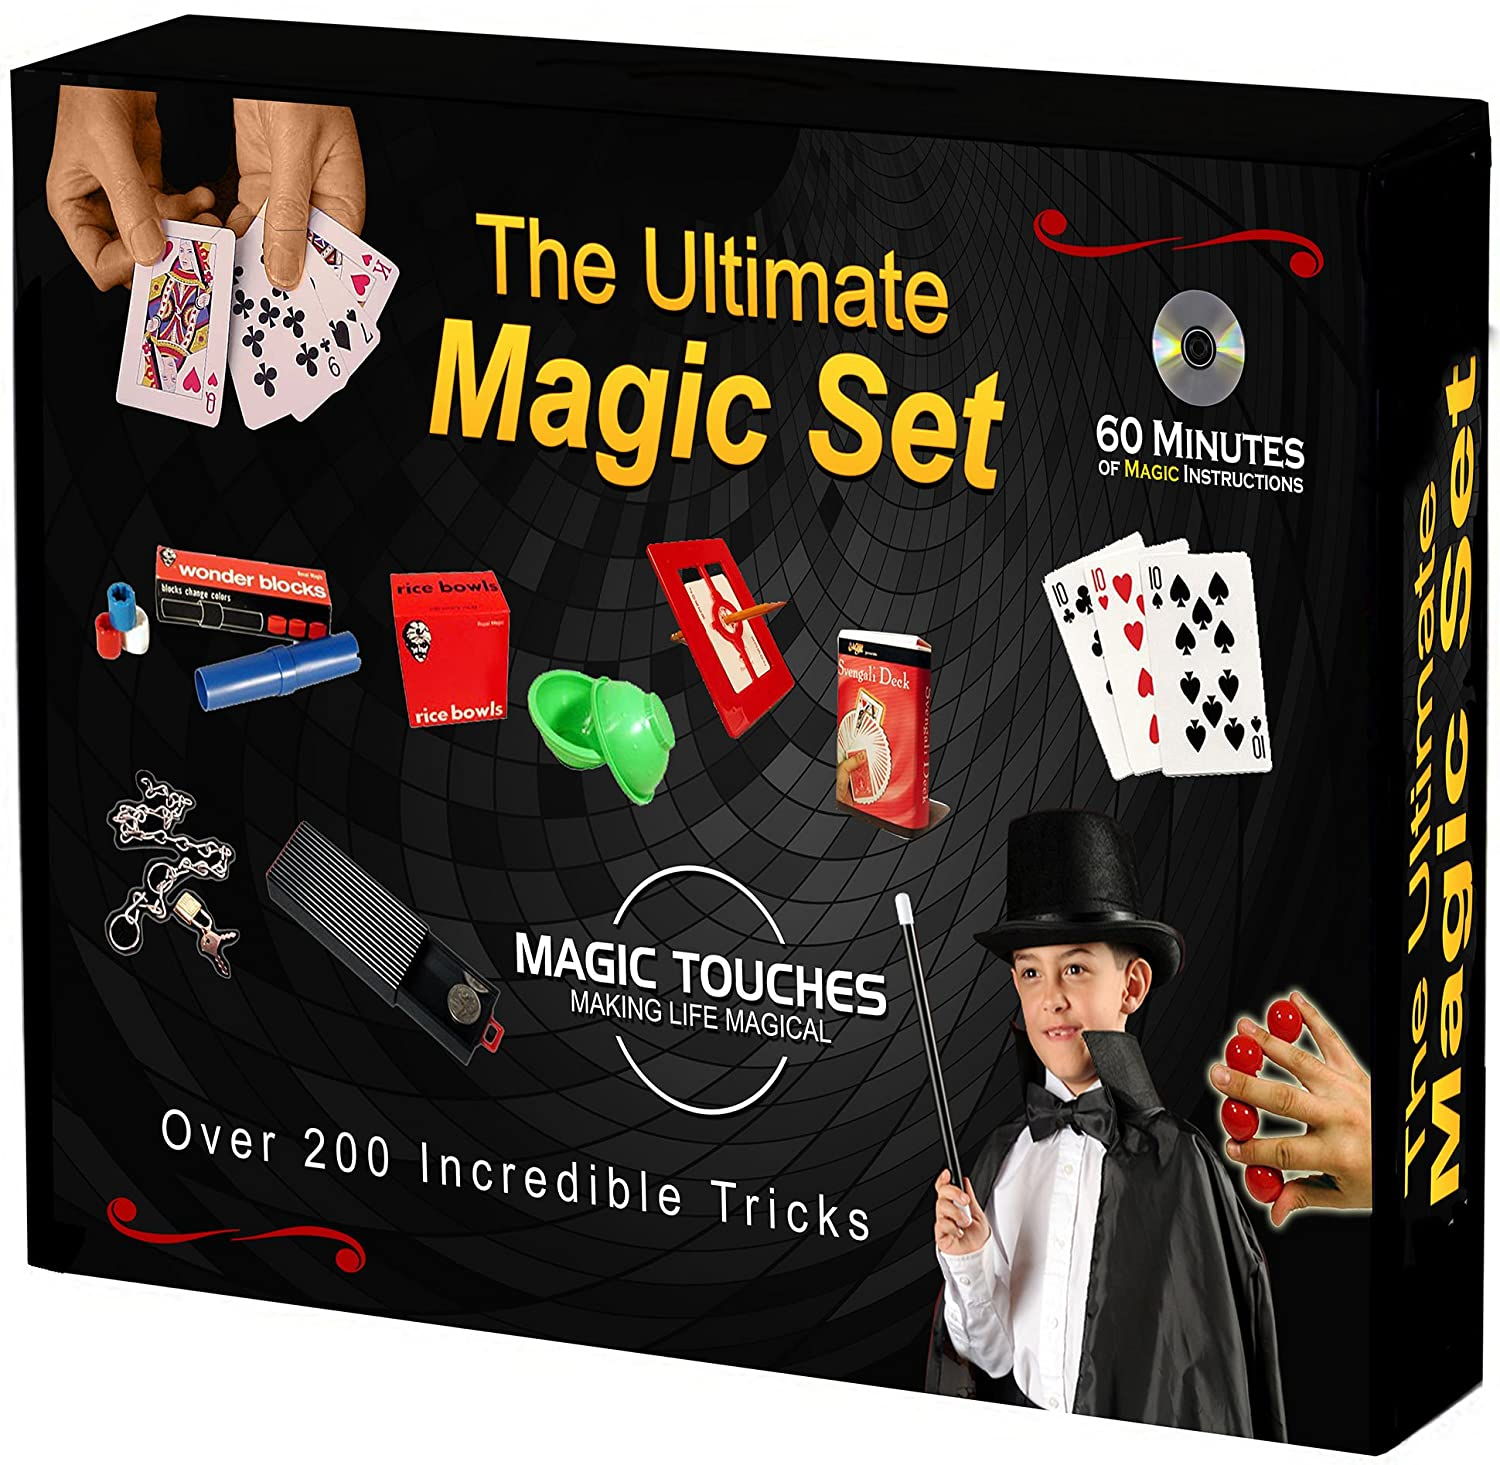 Magic Touches - Magic Tricks Set for Kids with Over 200 Tricks  Magic Kit  Includes DVD Tutorial Explaining The Classics in The Kit